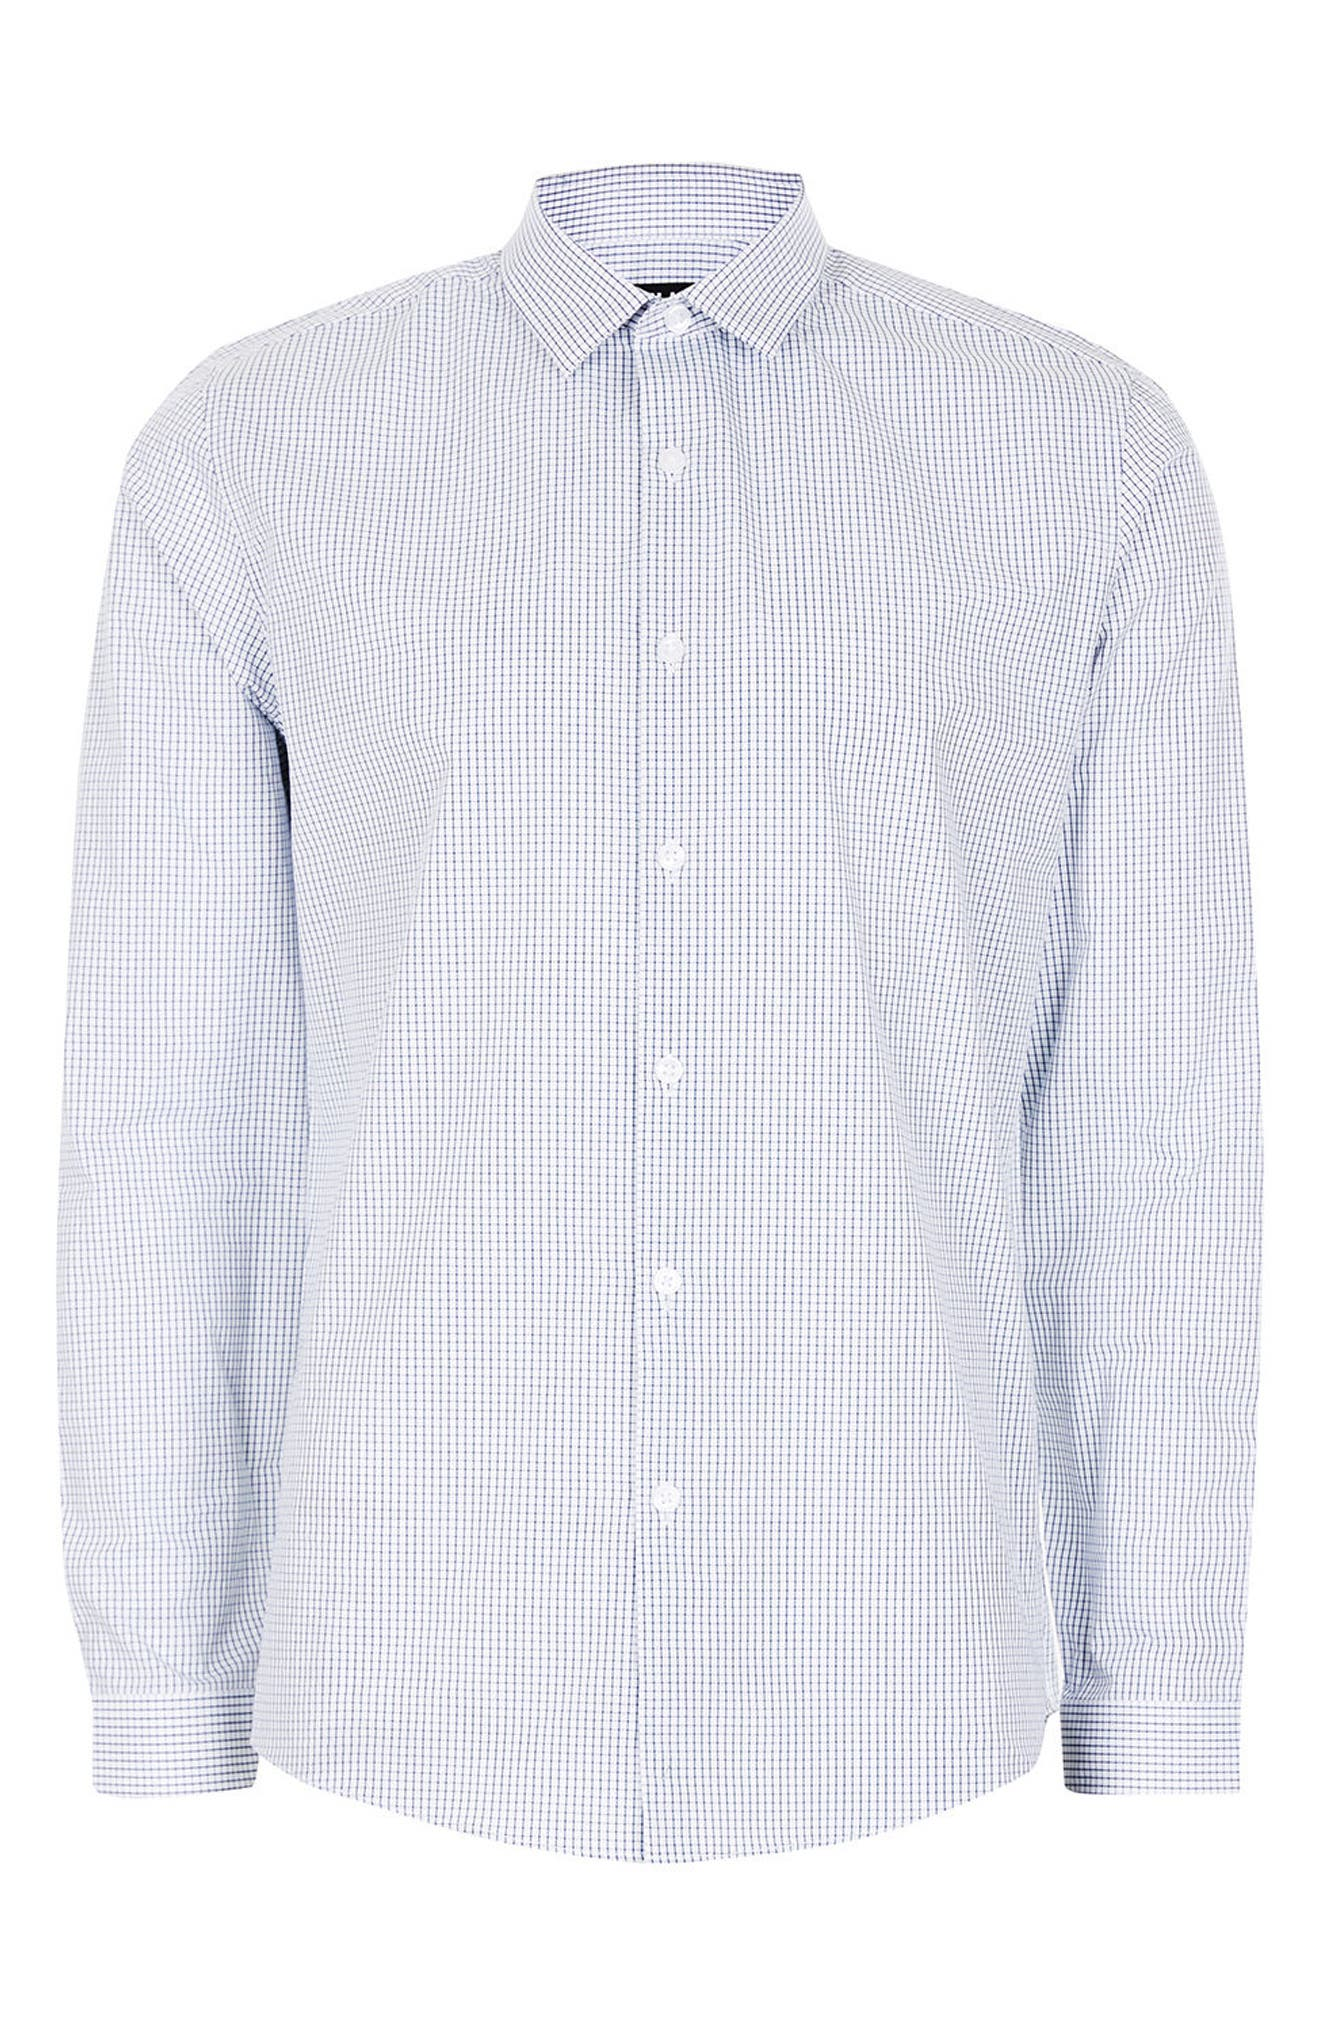 Alternate Image 7  - Topman Slim Fit Grid Check Dress Shirt